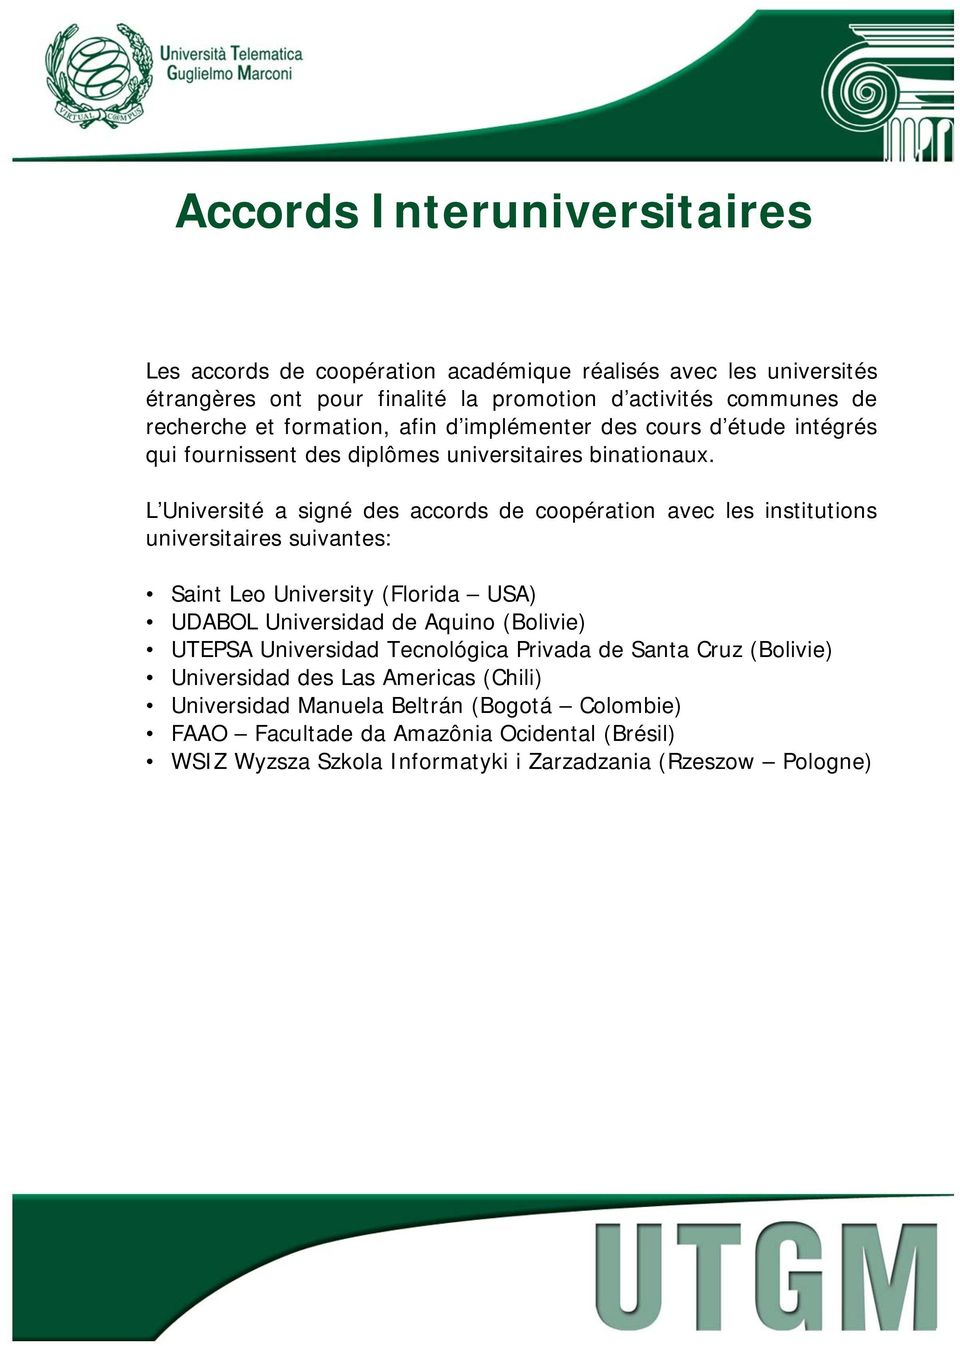 L Université a signé des accords de coopération avec les institutions universitaires suivantes: Saint Leo University (Florida USA) UDABOL Universidad de Aquino (Bolivie) UTEPSA